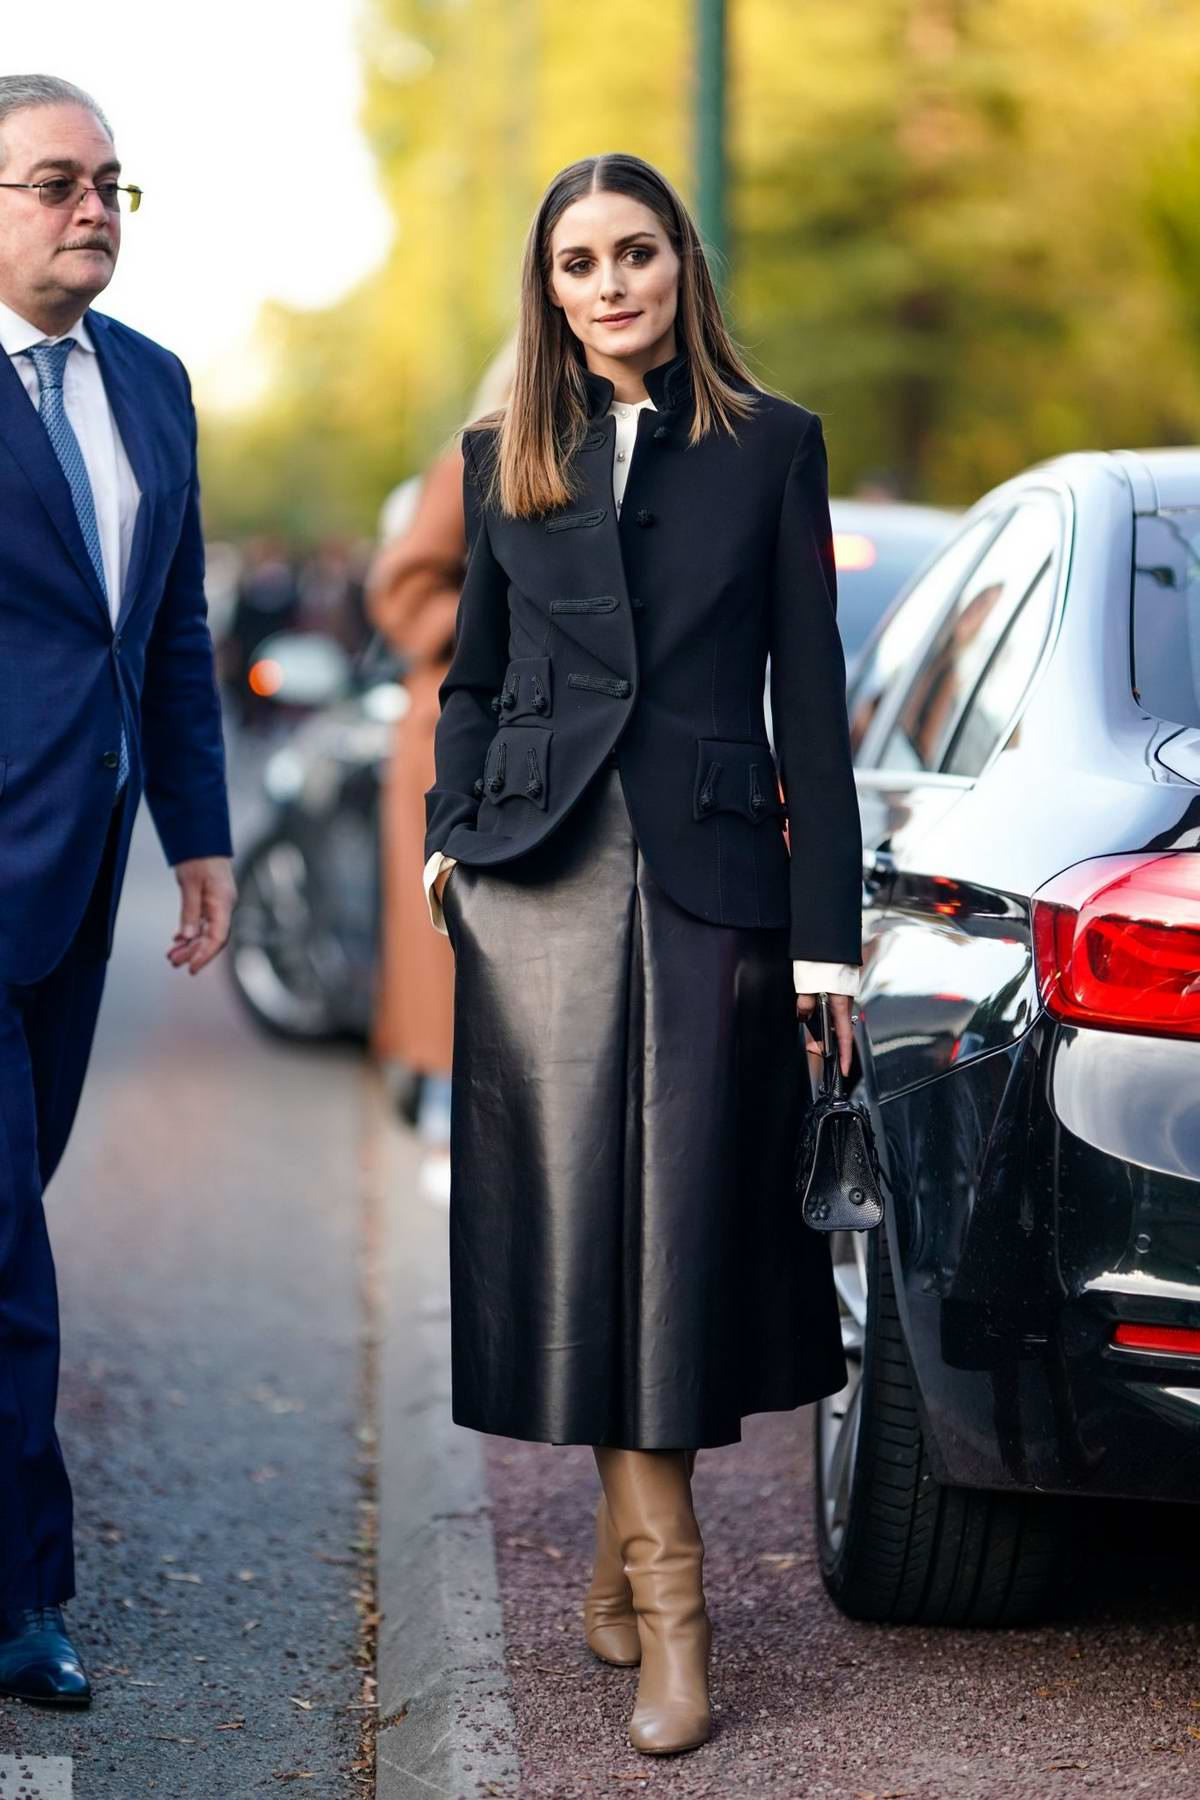 Olivia Palermo attending the Hermes Show during Paris Fashion Week in Paris, France